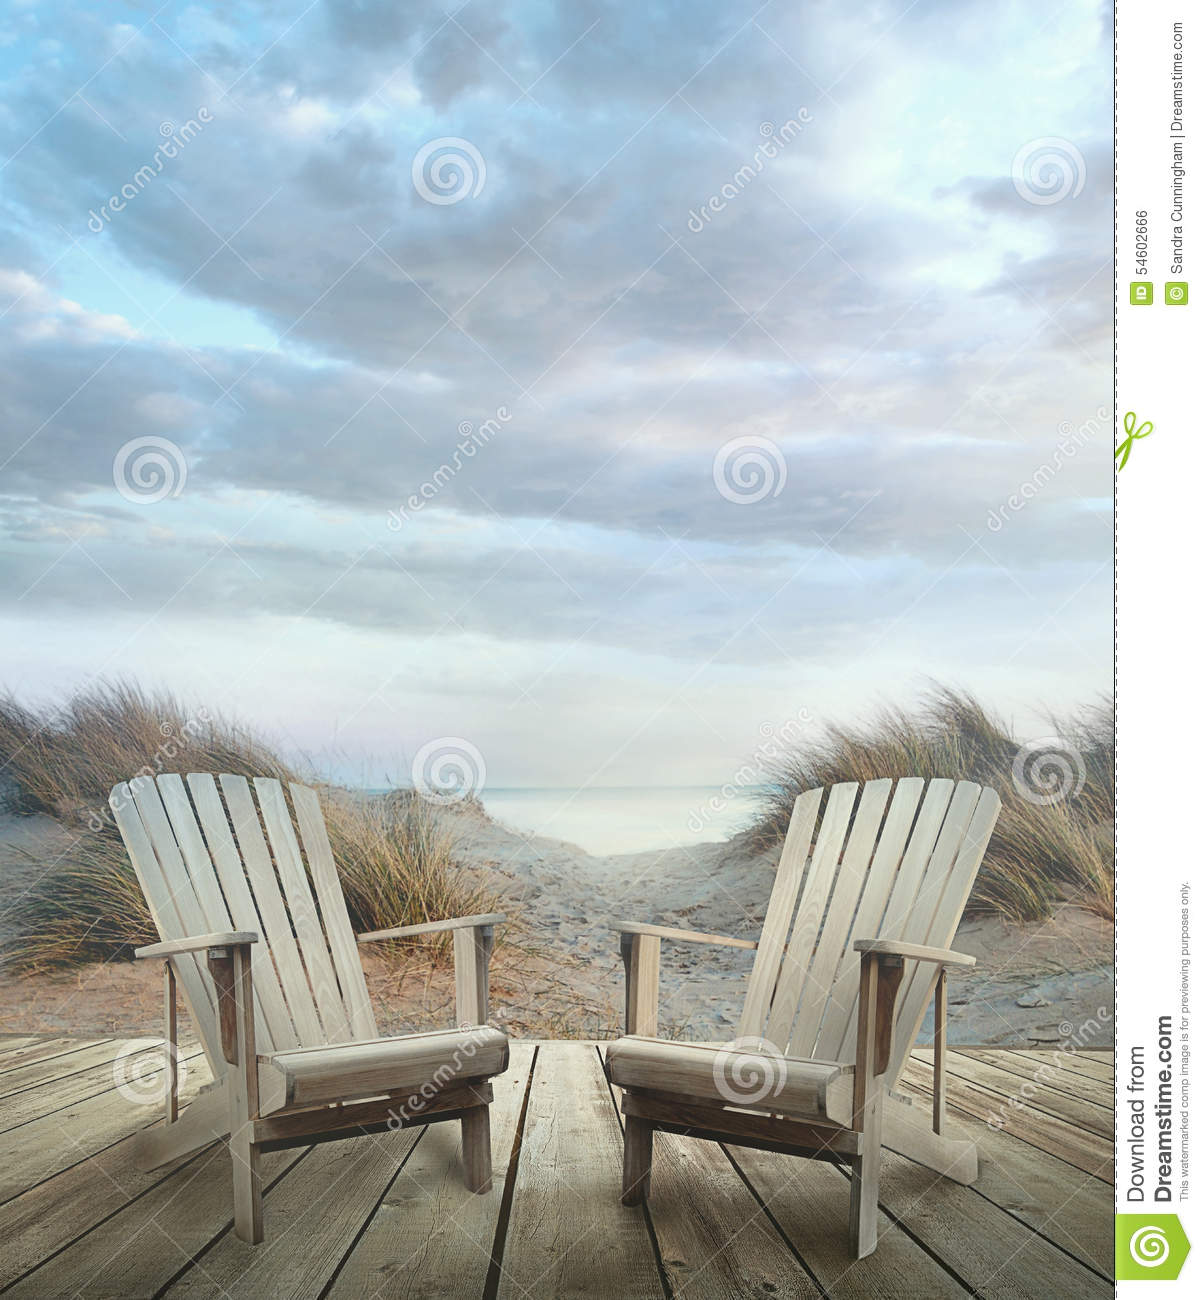 Wooden Deck With Chairs Sand Dunes And Ocean Stock